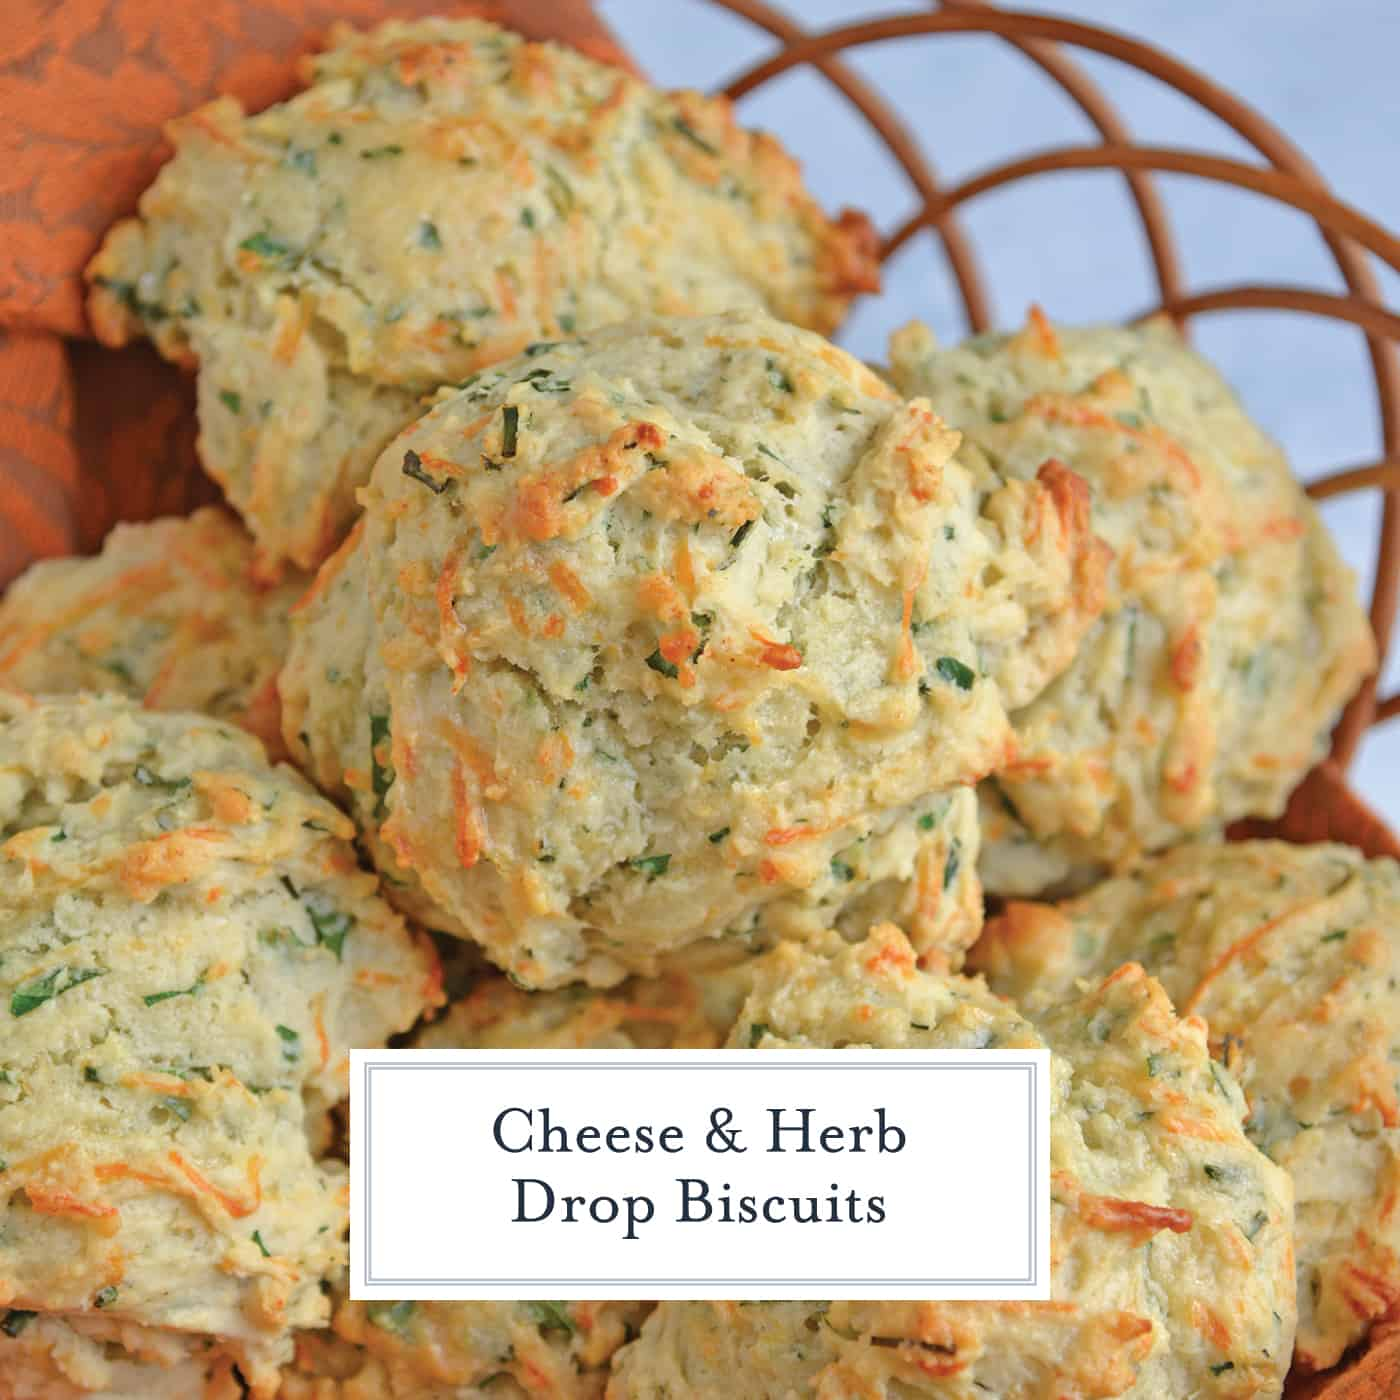 Cheese and Herb Biscuits are a delicious combination of fresh herbs, parmesan and mozzarella cheese! This recipe is perfect to enjoy as a side dish or a snack! #dropbiscuitrecipe #homemadebiscuits www.savoryexperiments.com